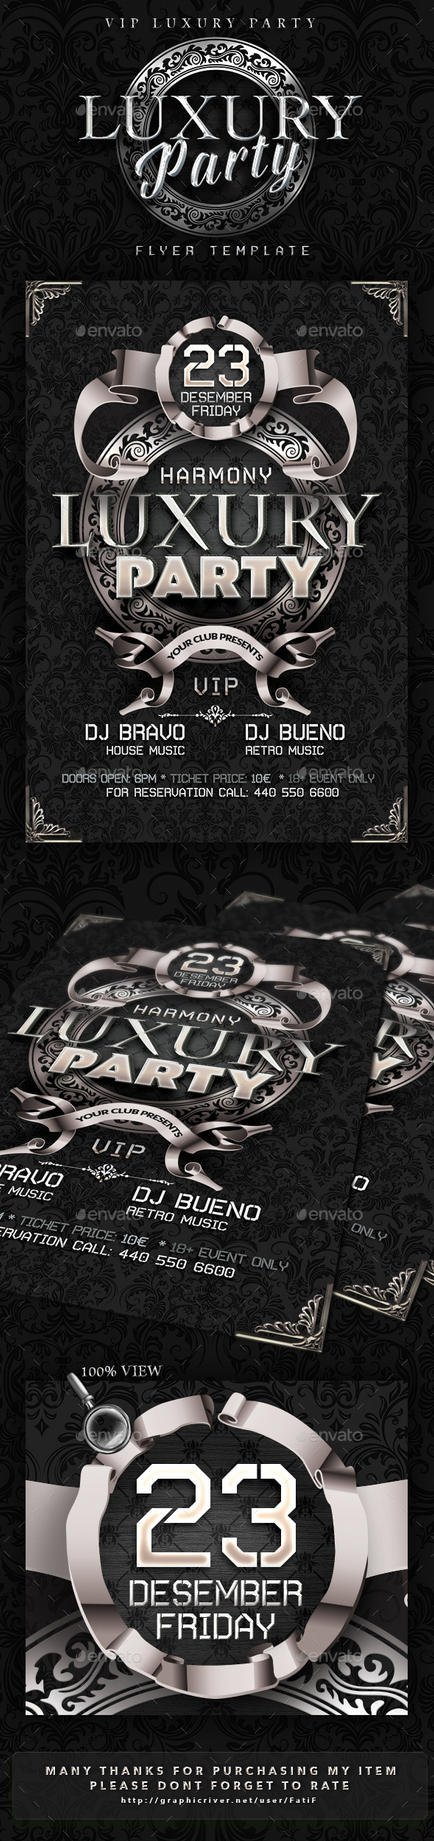 Luxury Party Flyer Template by arEa50oNe